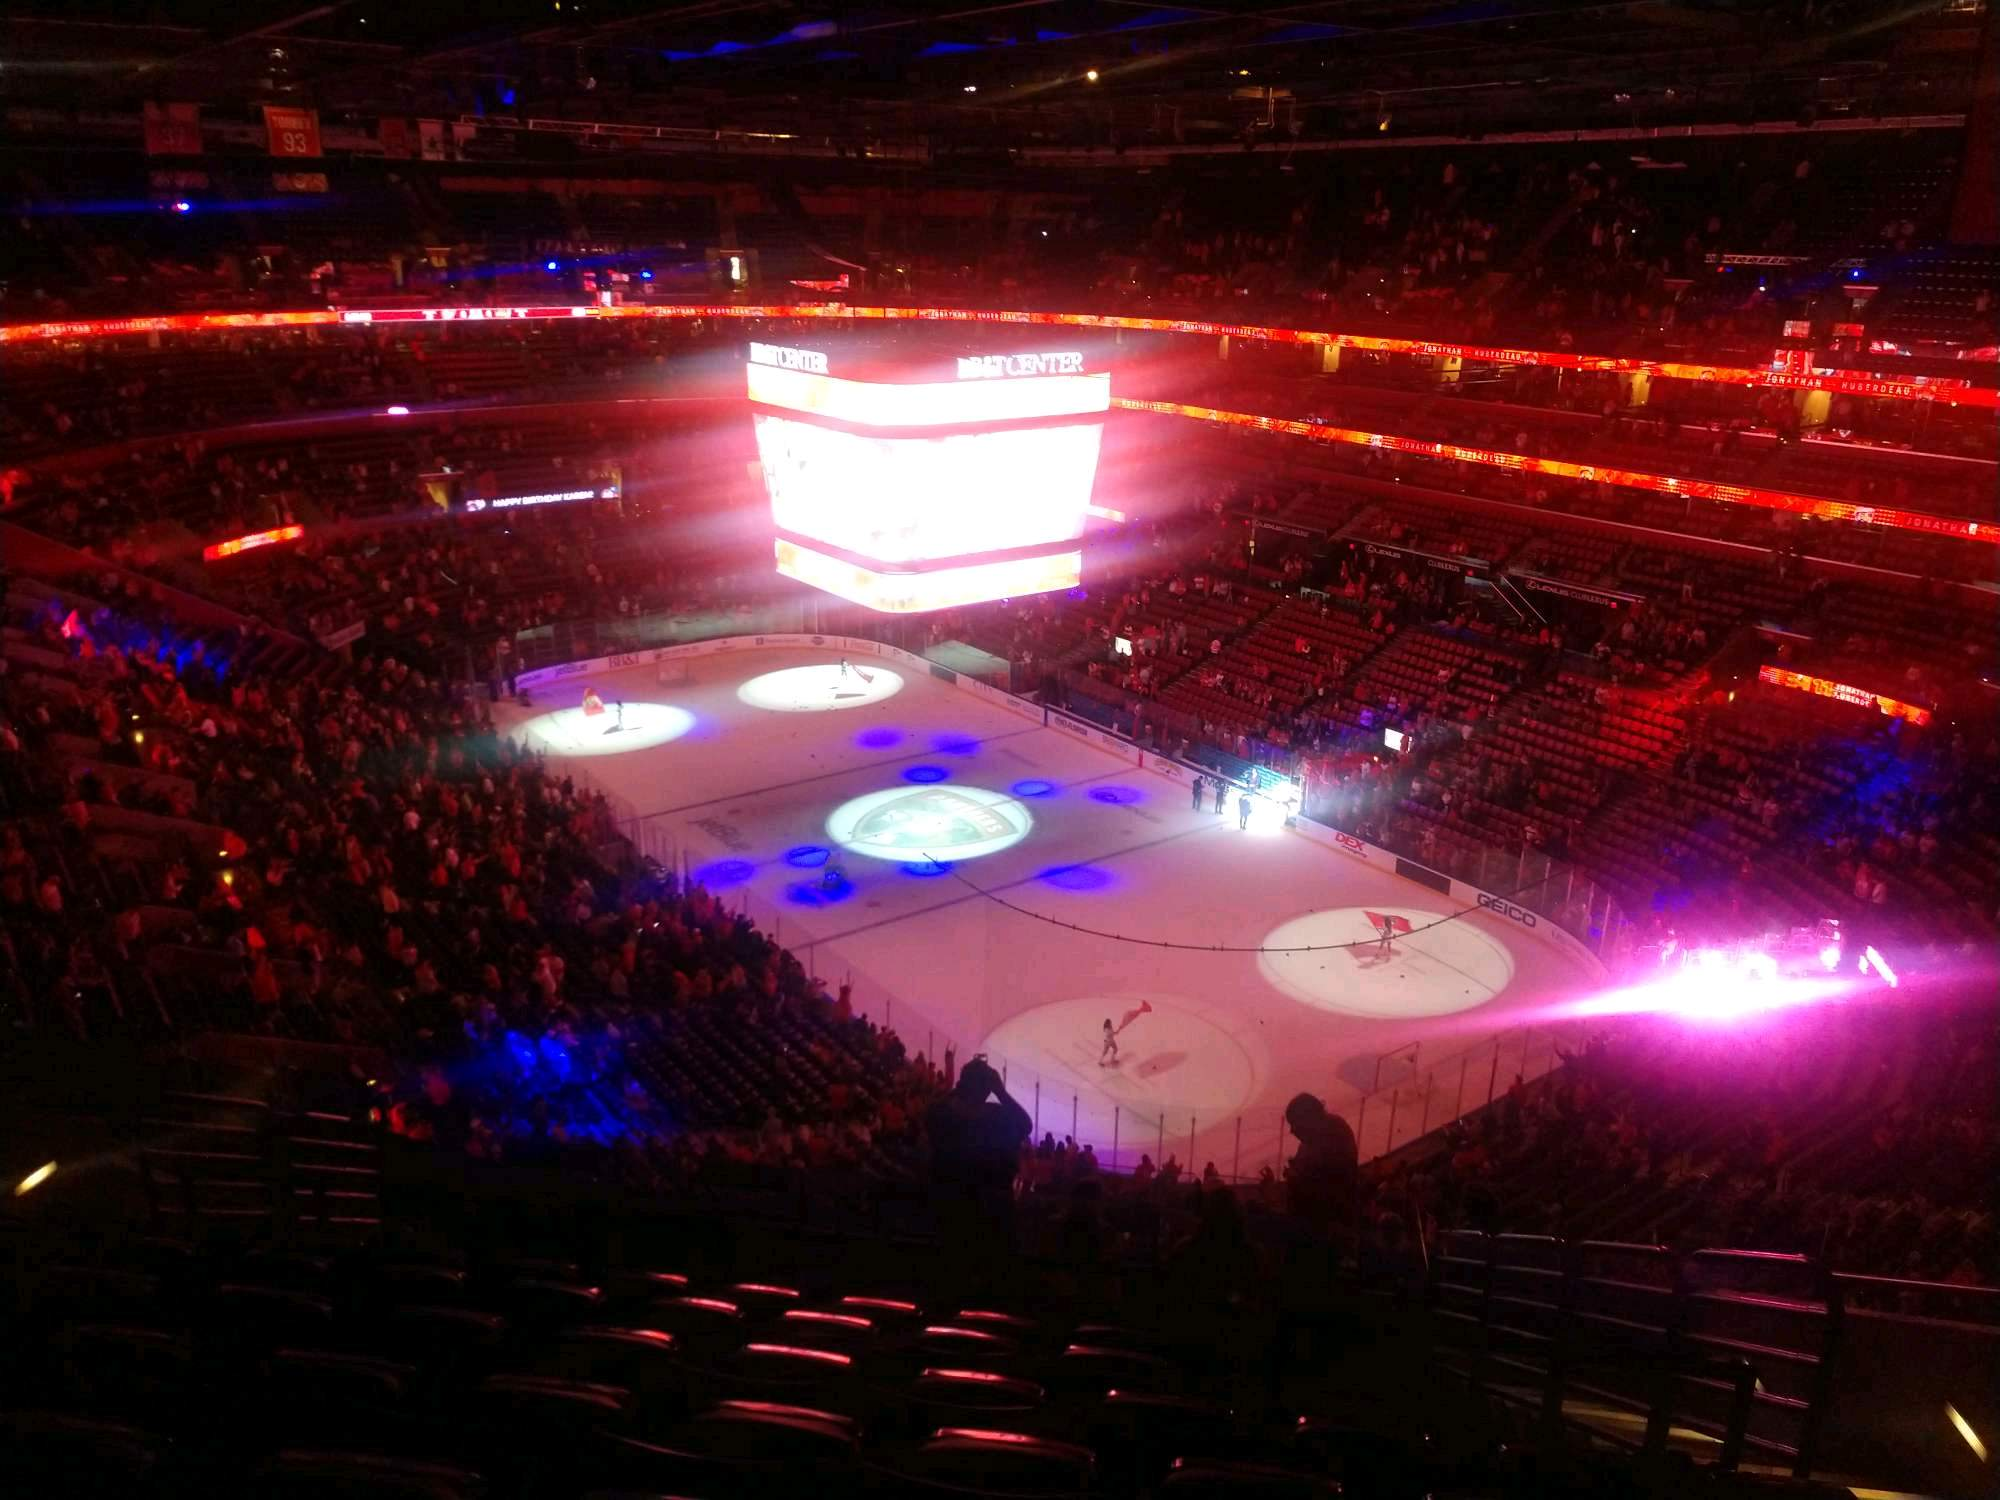 BB&T Center Section 313 Row 11 Seat 8